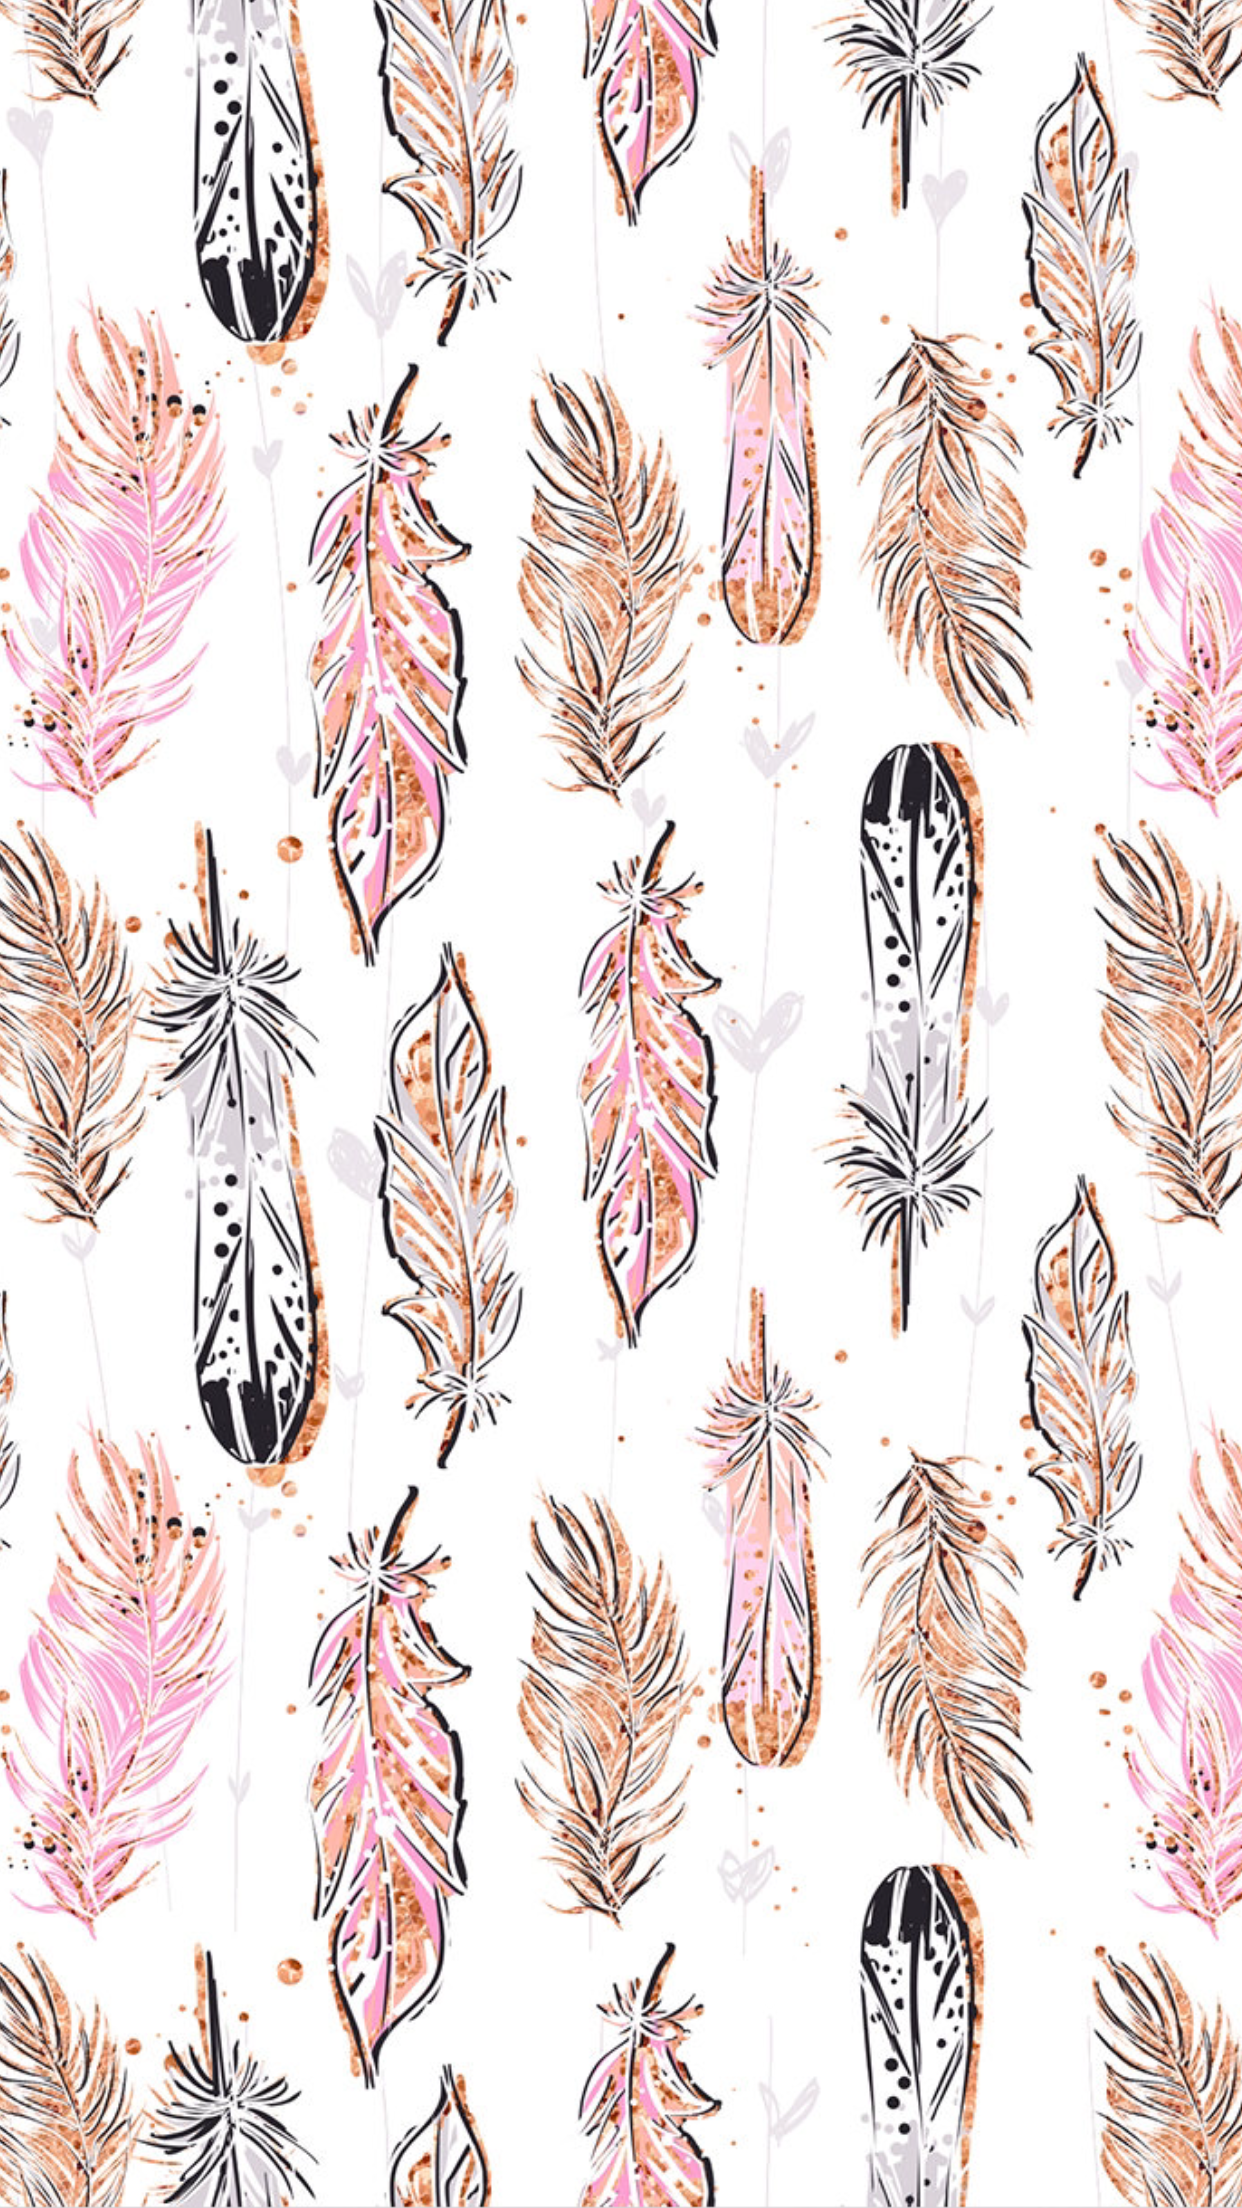 Find This Pin And More On Wallpapers By Charlotteharris2003.